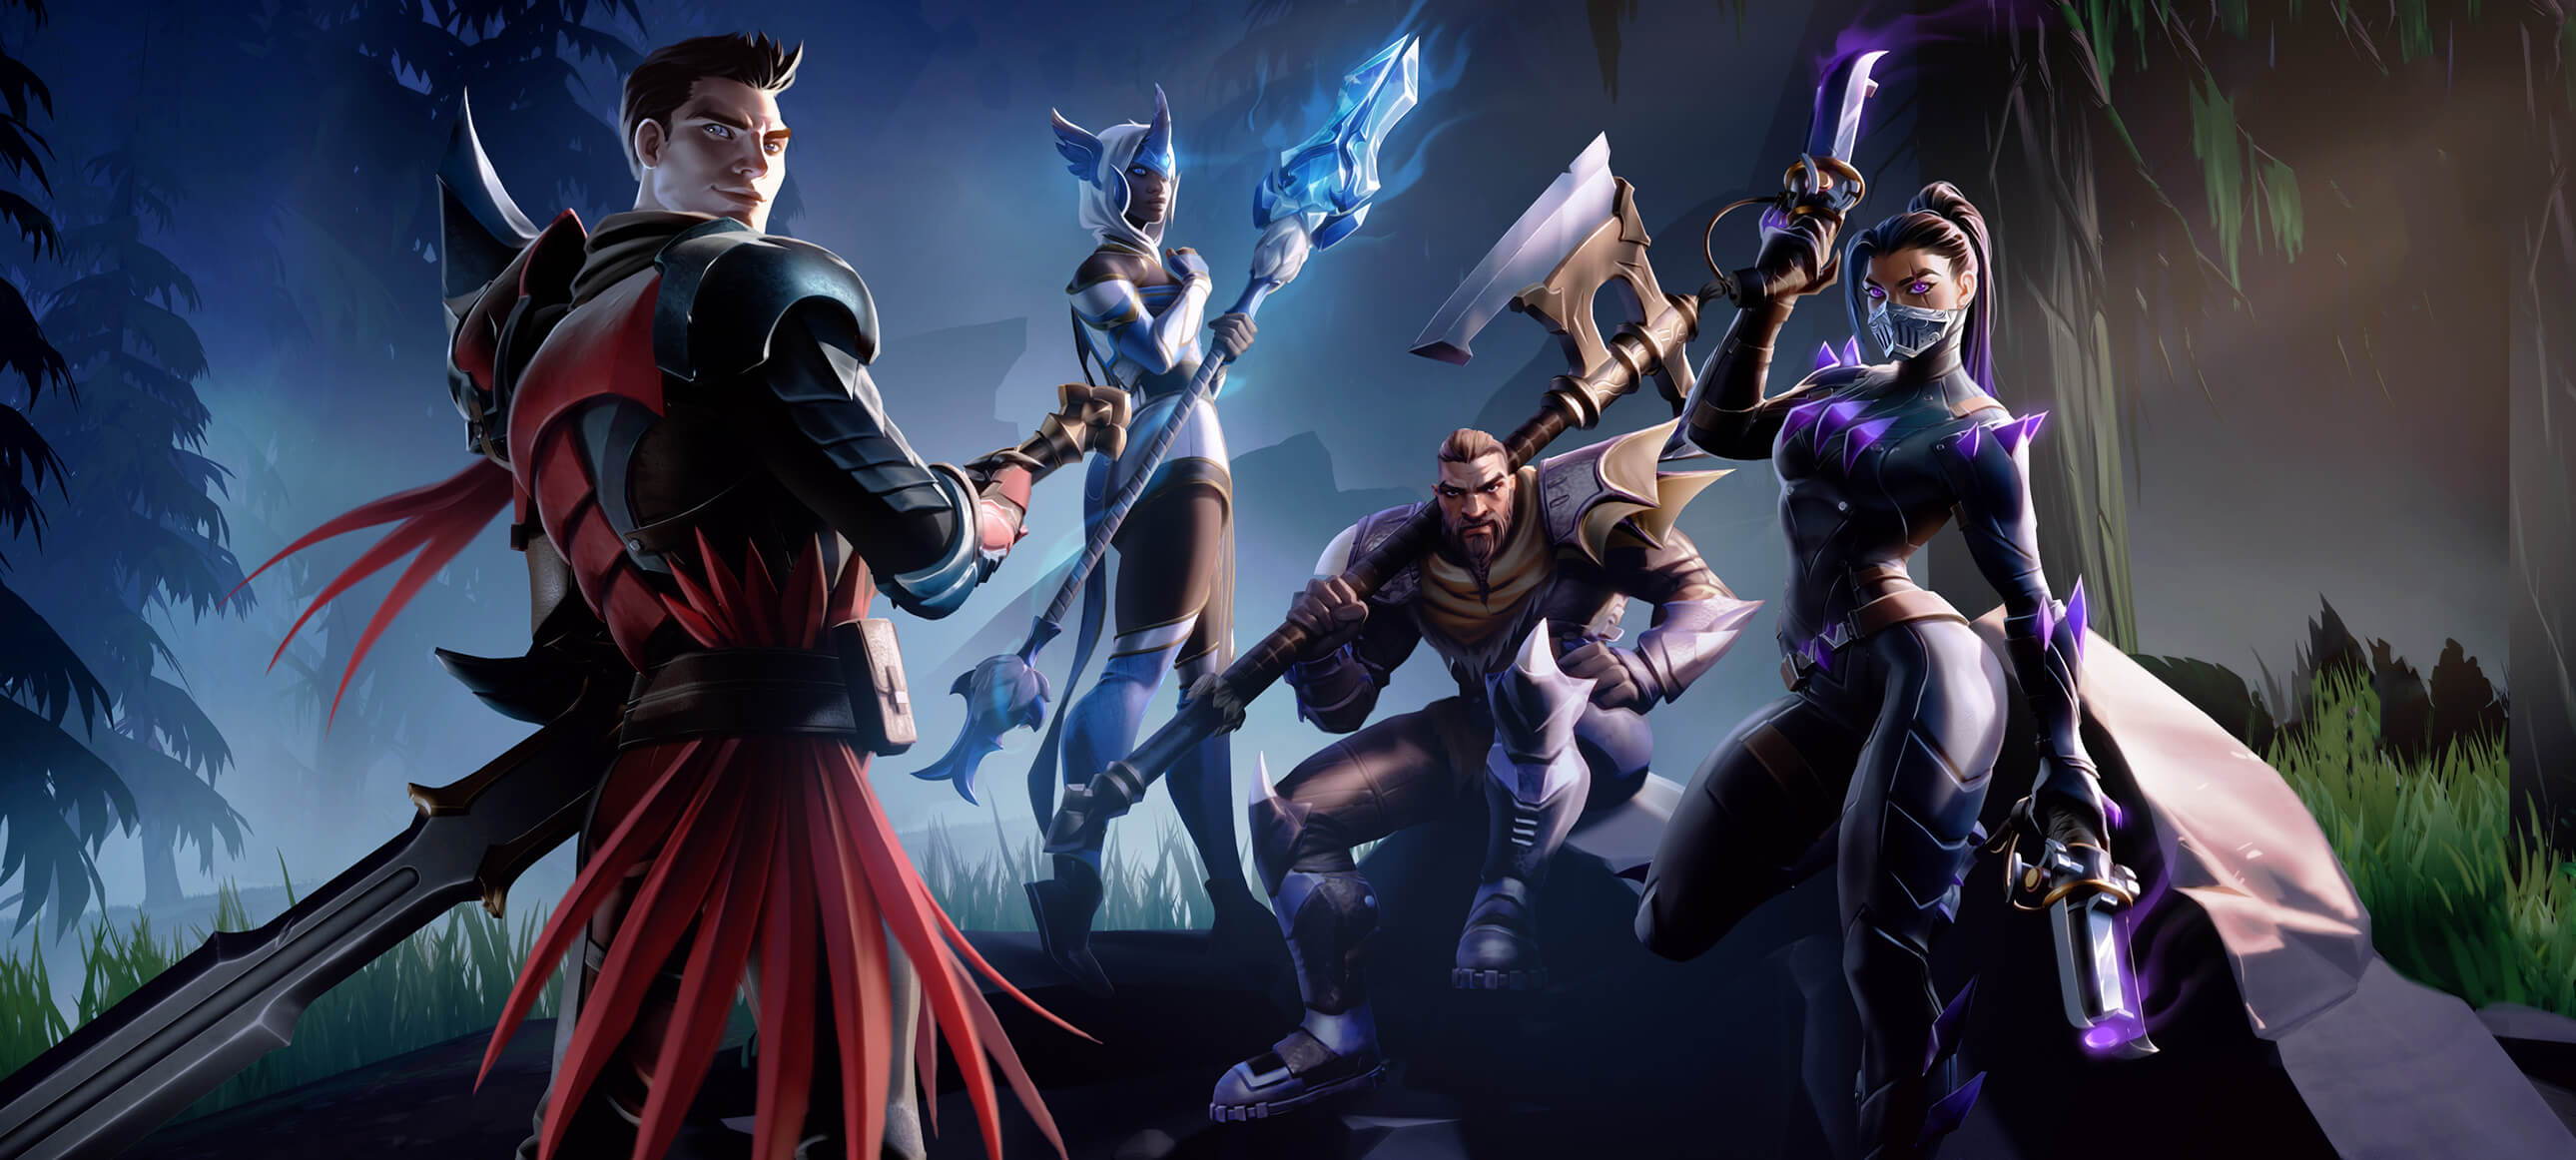 Dauntless is heading to Switch later this year screenshot